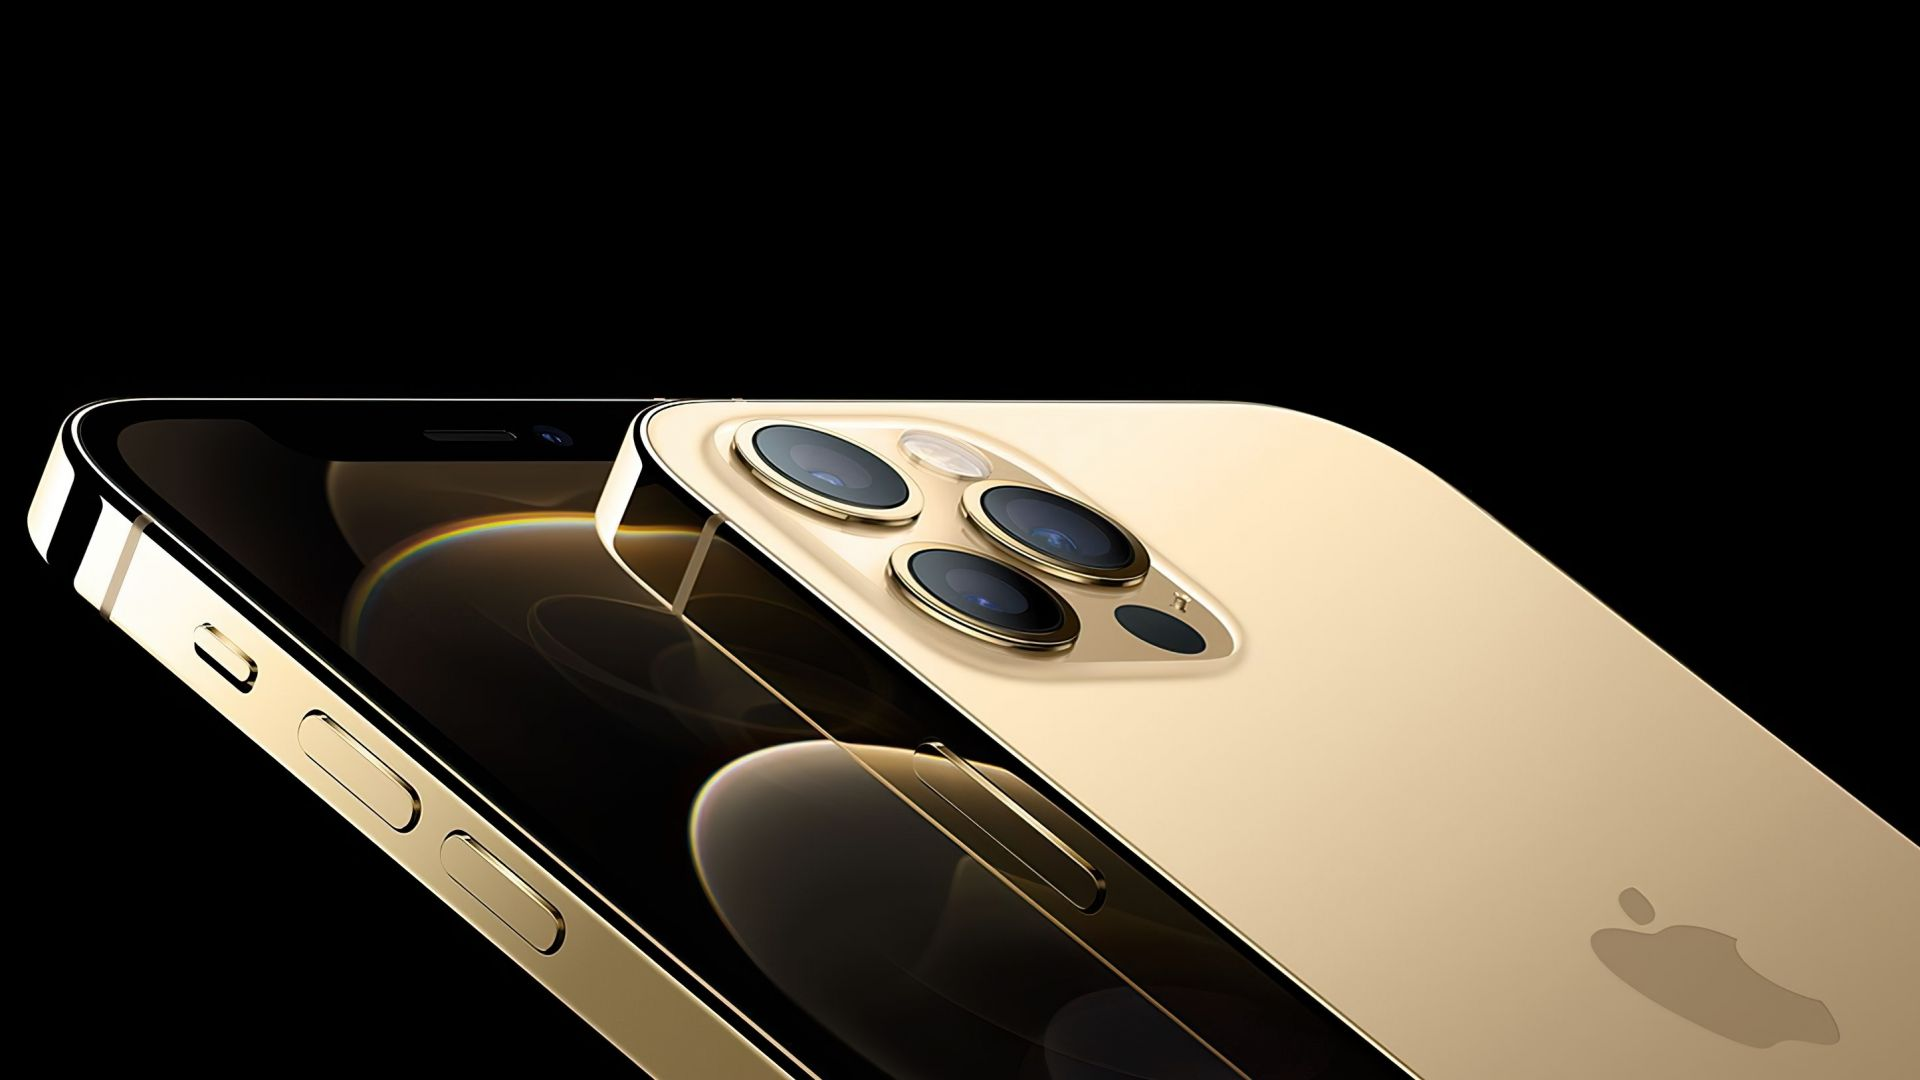 iPhone 12 Pro, Apple October 2020 Event, 4K (horizontal)